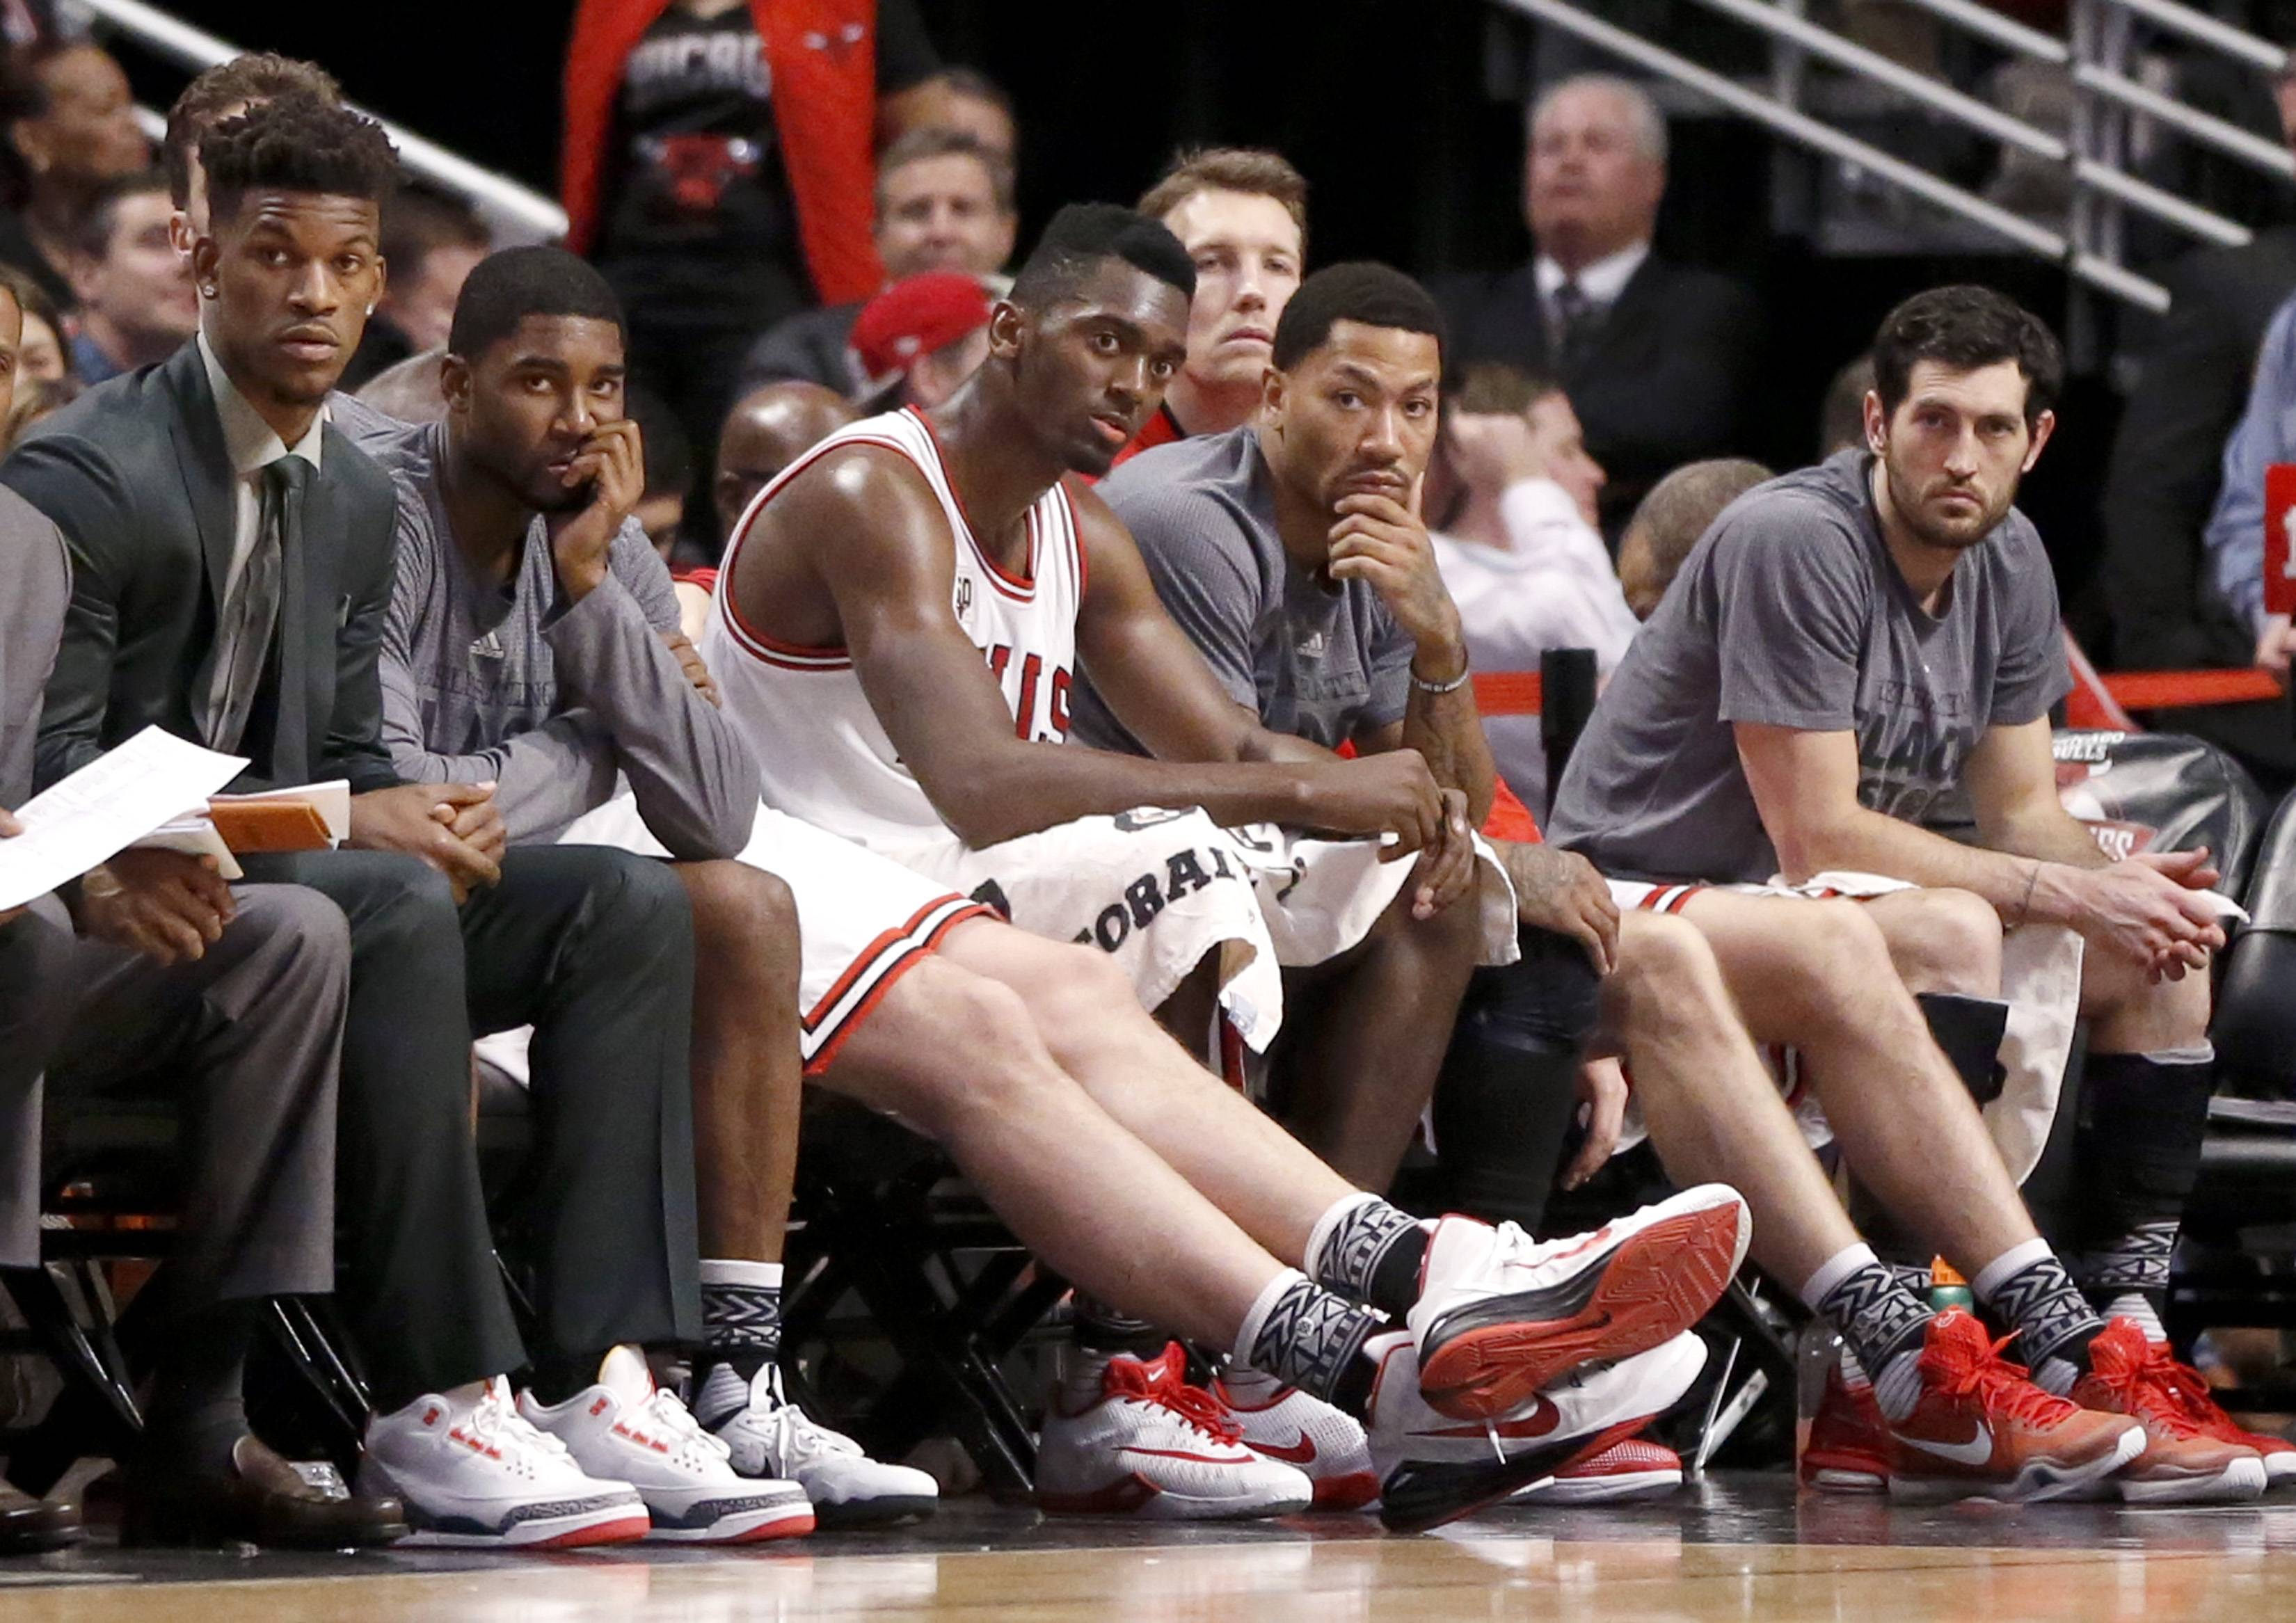 The Chicago Bulls have hit the NBA all-star break in a free fall. A month ago, they seemed to be a likely No. 2 seed in the East. Now they're on the verge of dropping out of the playoff picture. What has gone wrong?